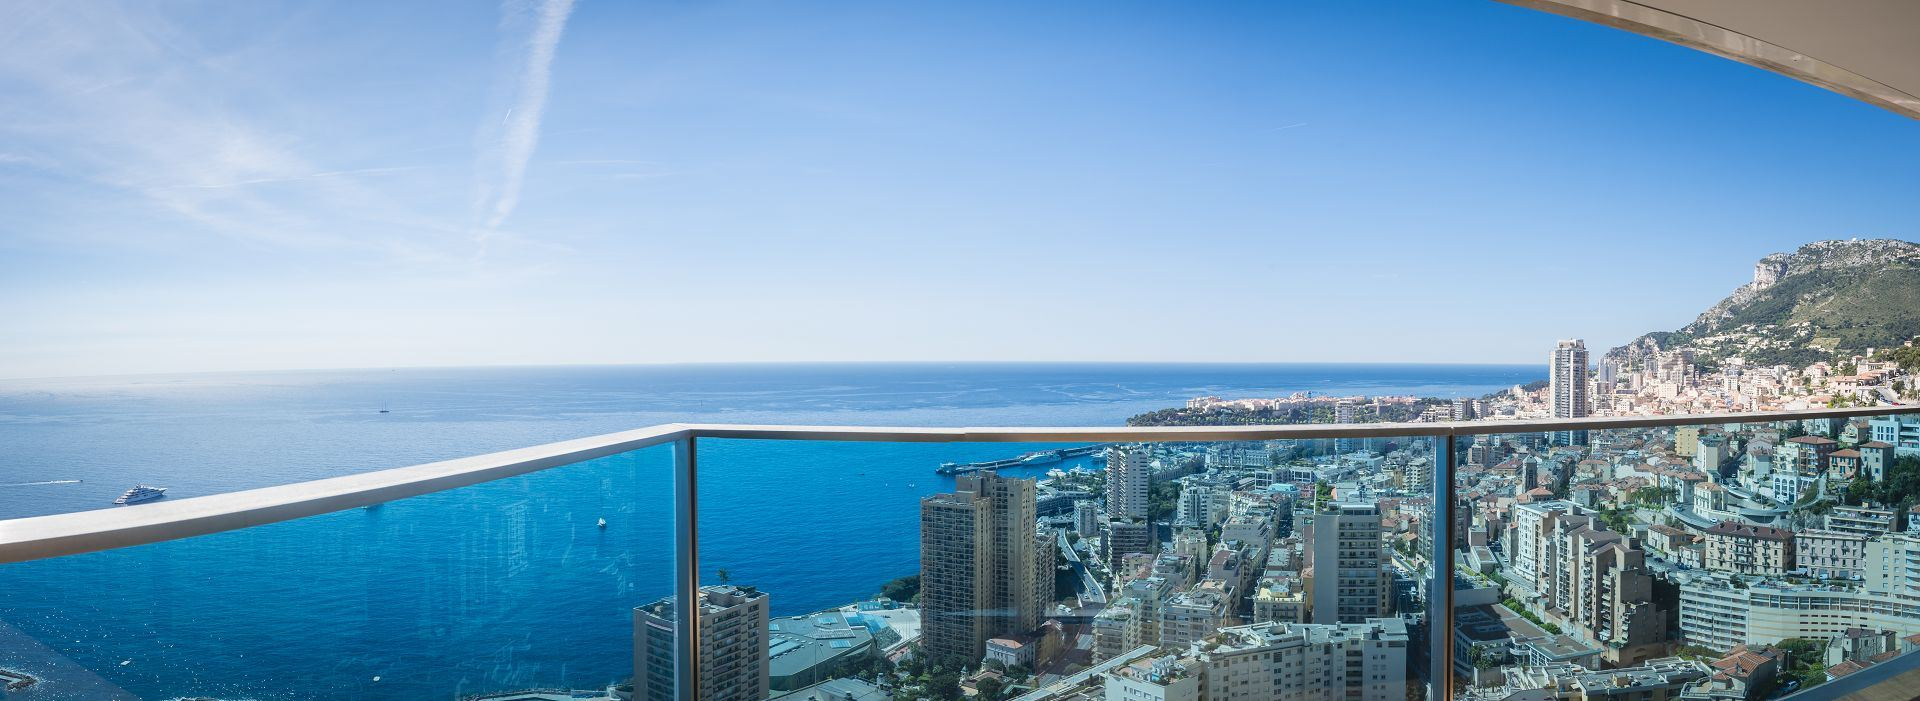 Apartamento para Venda às Odeon Tower - Superb brand new apartment Tour Odéon 36 Avenue de l'Annonciade Other Monaco, Other Areas In Monaco, 98000 Mônaco